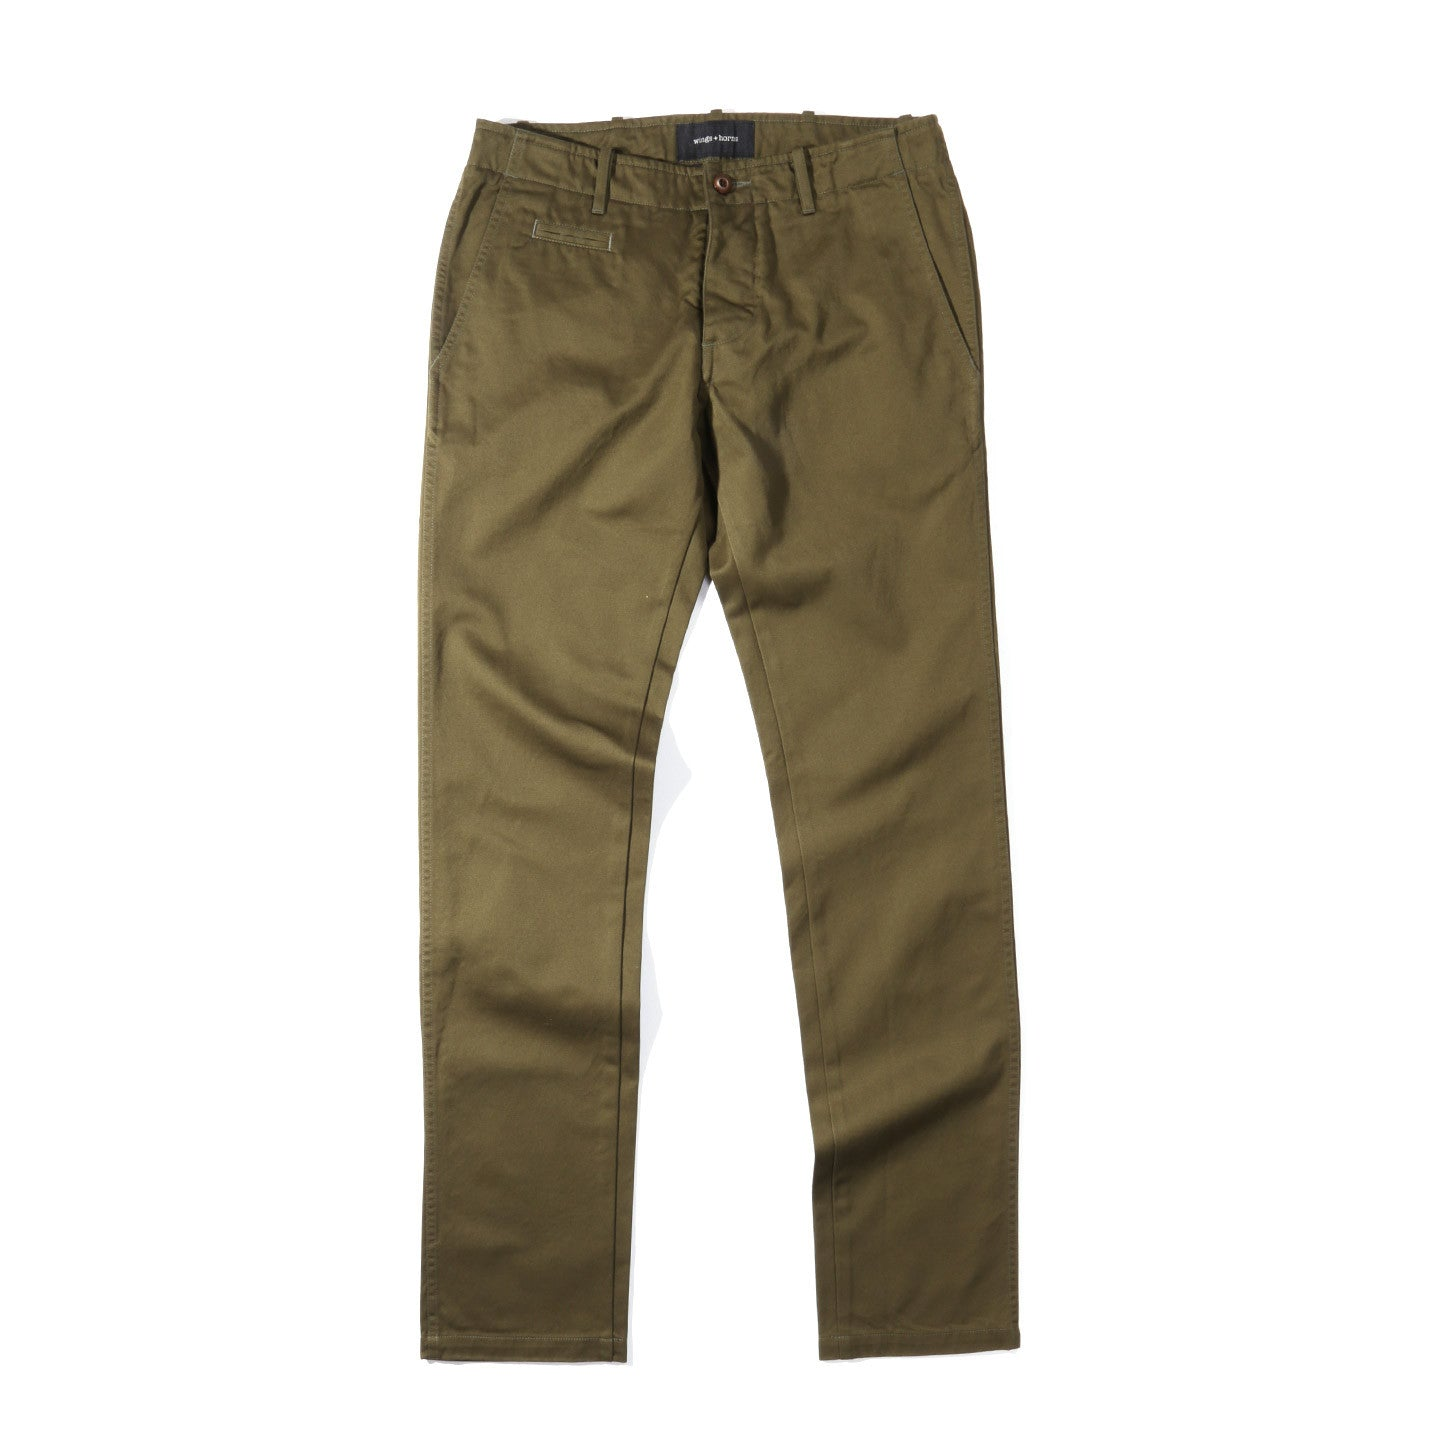 WINGS + HORNS WESTPOINT CHINO OLIVE